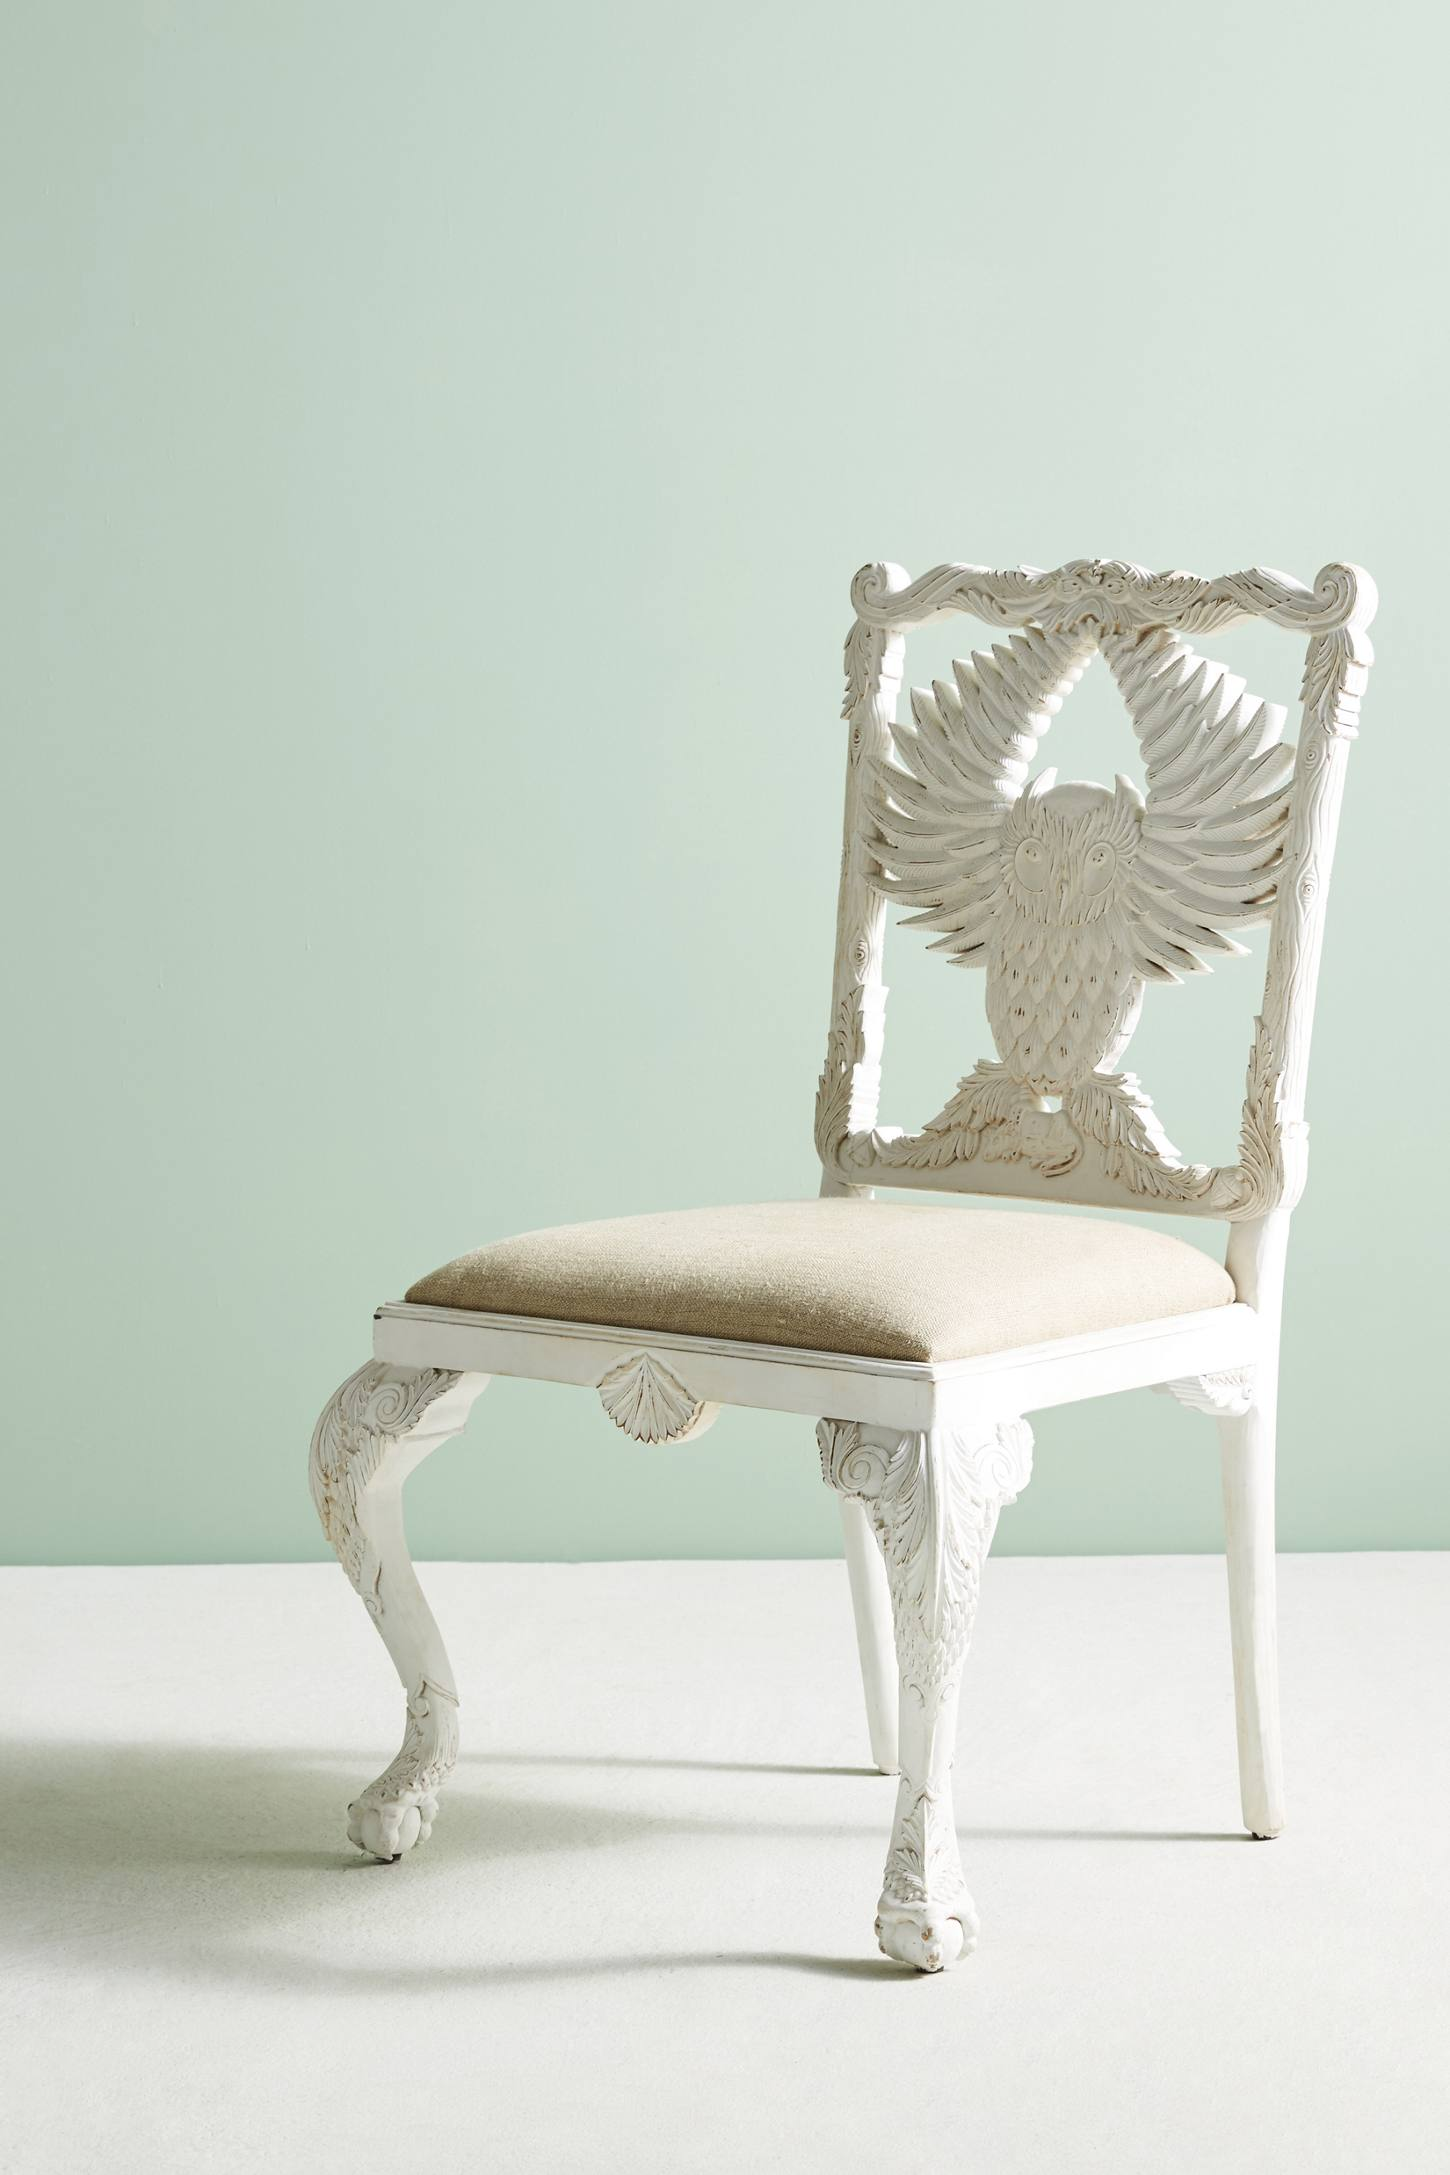 Slide View: 2: Handcarved Menagerie Owl Dining Chair